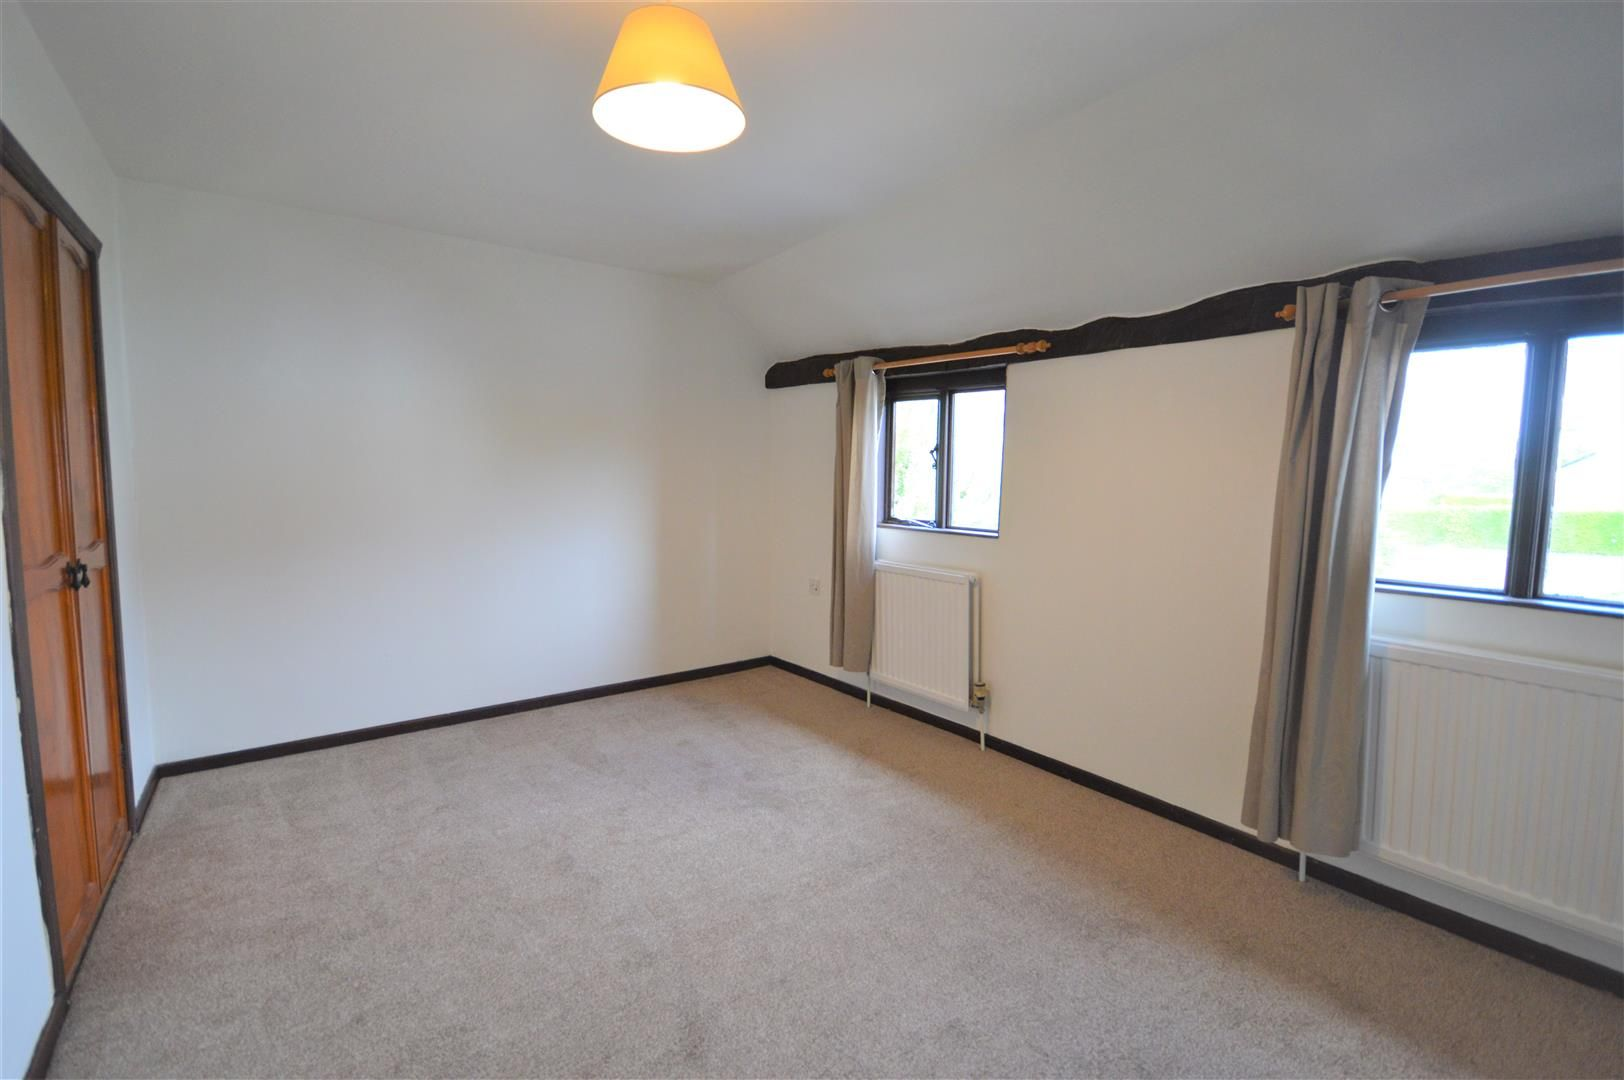 3 bed end of terrace for sale in Luston 9